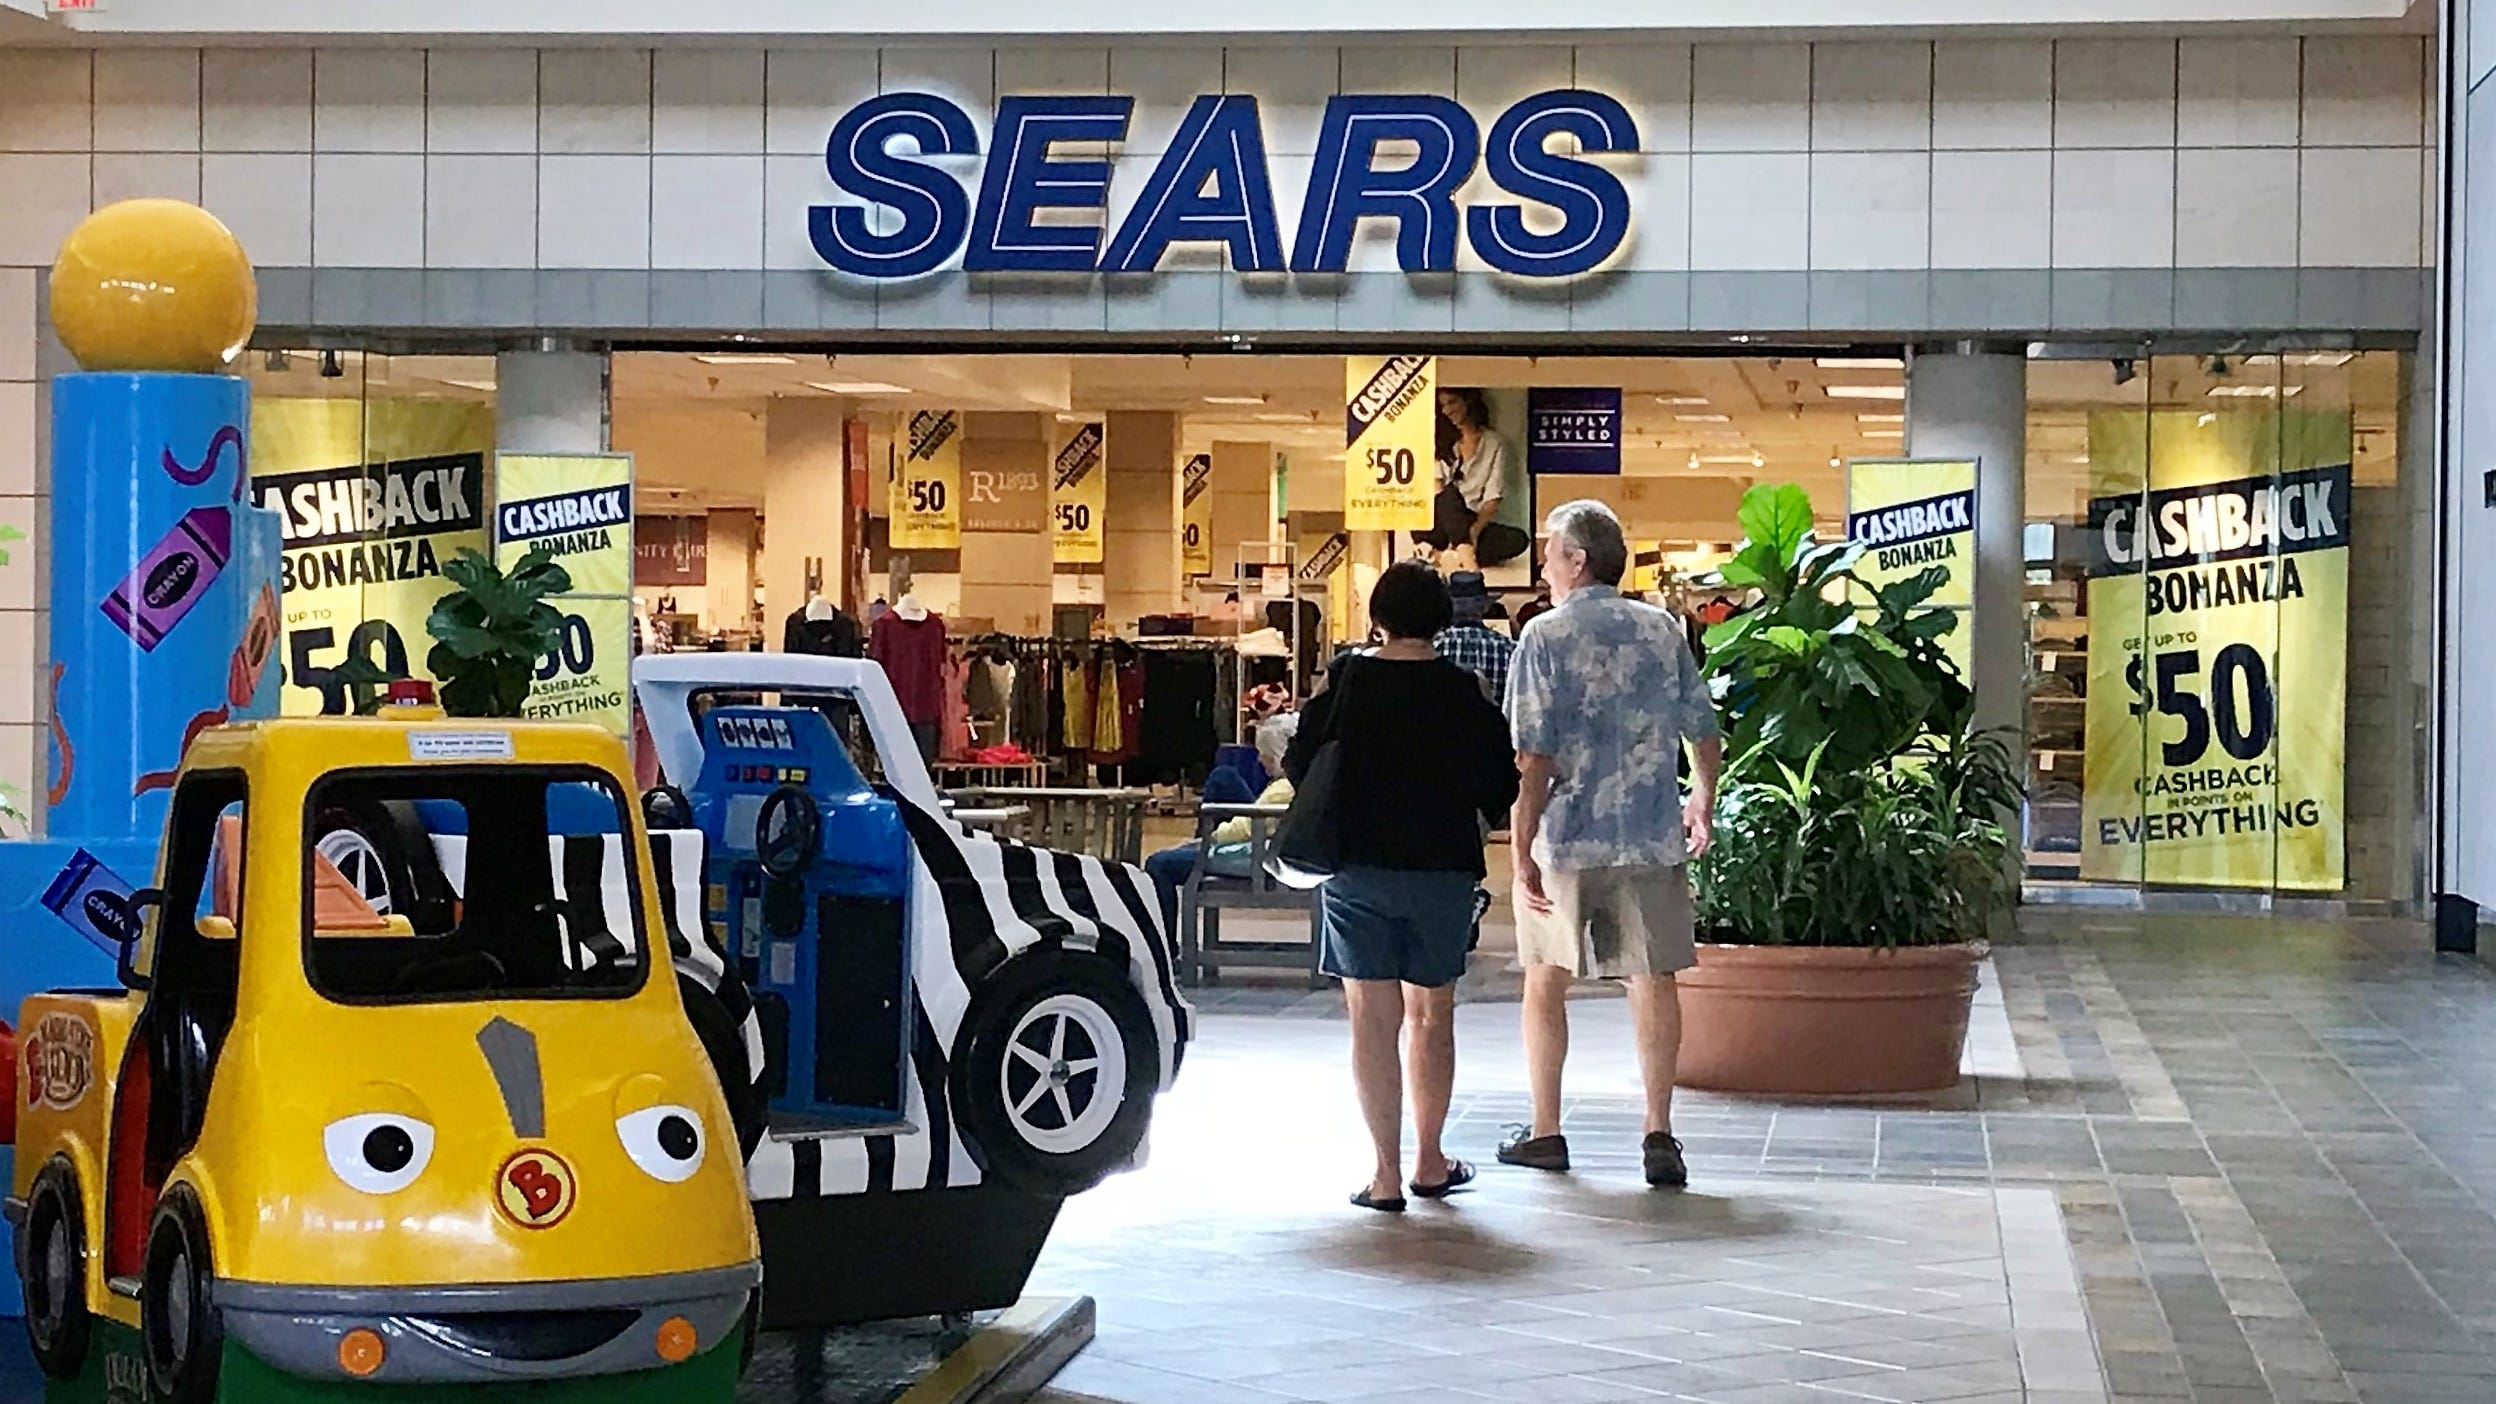 Sears Bankruptcy What To Do Now As The Company Files For Chapter 11